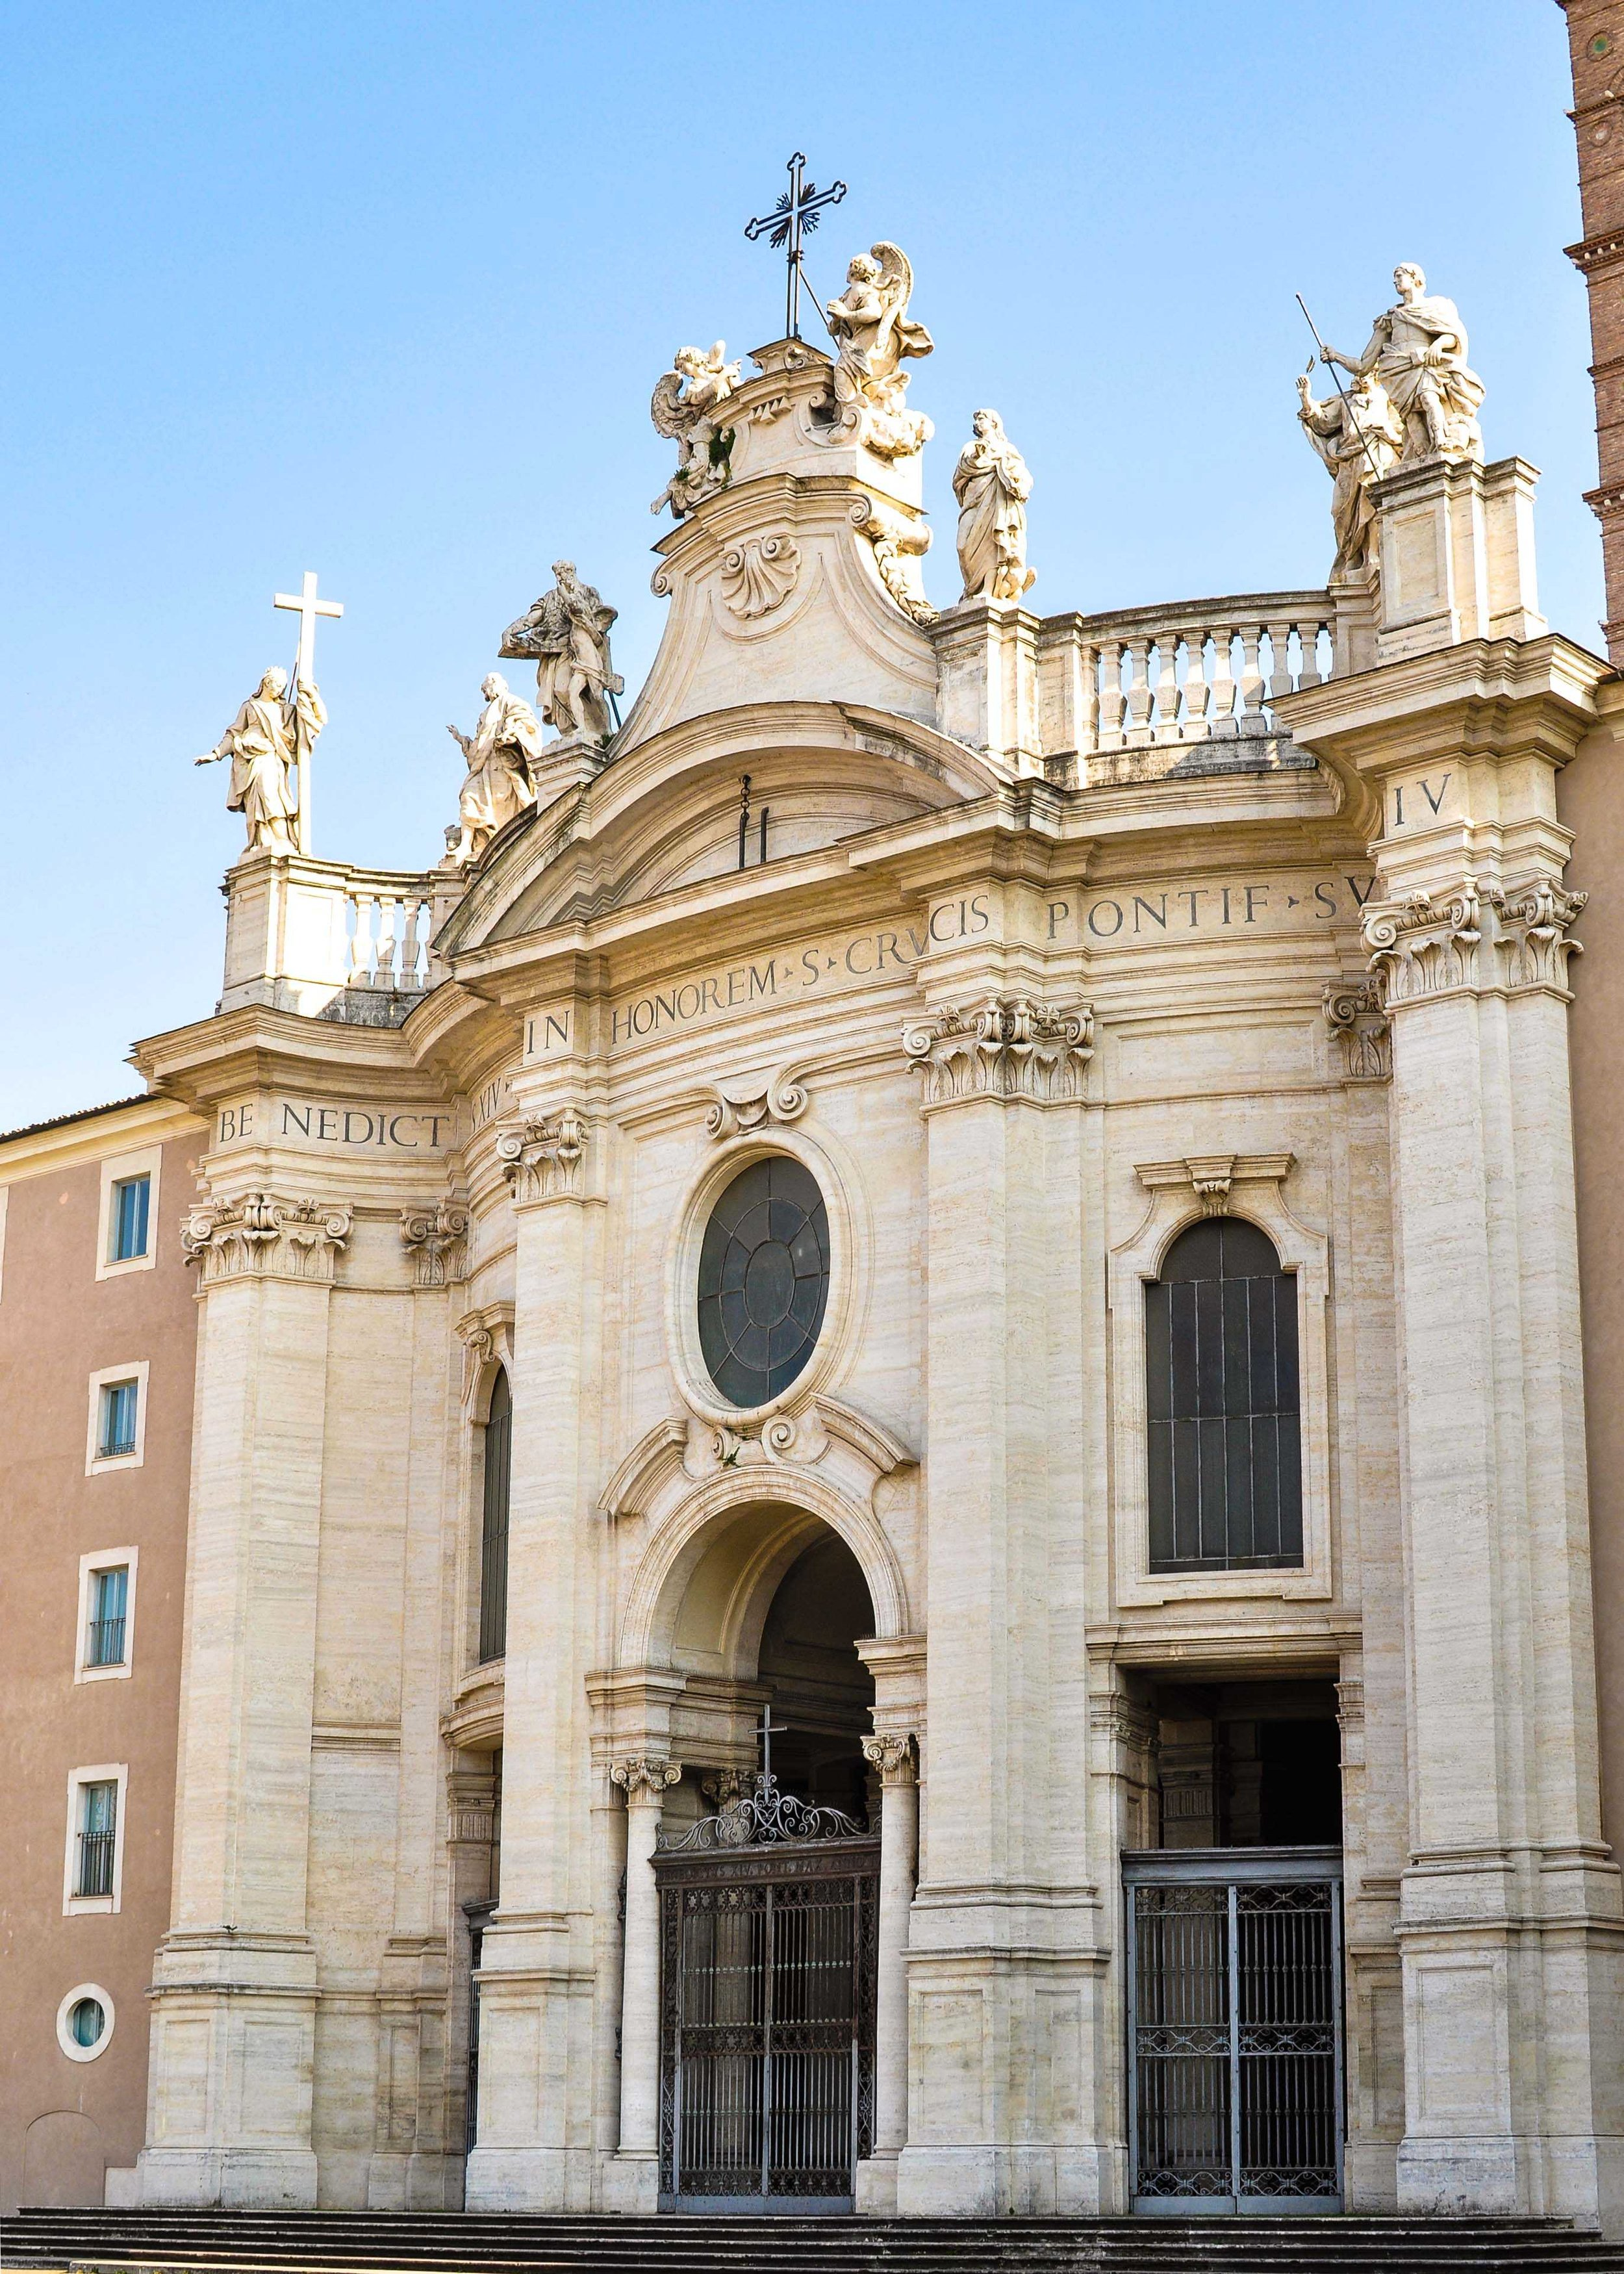 Facade of S. Croce in Gerusalemme, Rome.  The church is called Basilica of the Holy Cross in Jerusalem because at one time the floor was covered with dirt from Jerusalem so that the Holy Land would be a part of the foundation. The statue on the far left holding the cross is St. Helena and she is mirrored by a statue of her son, Constantine.